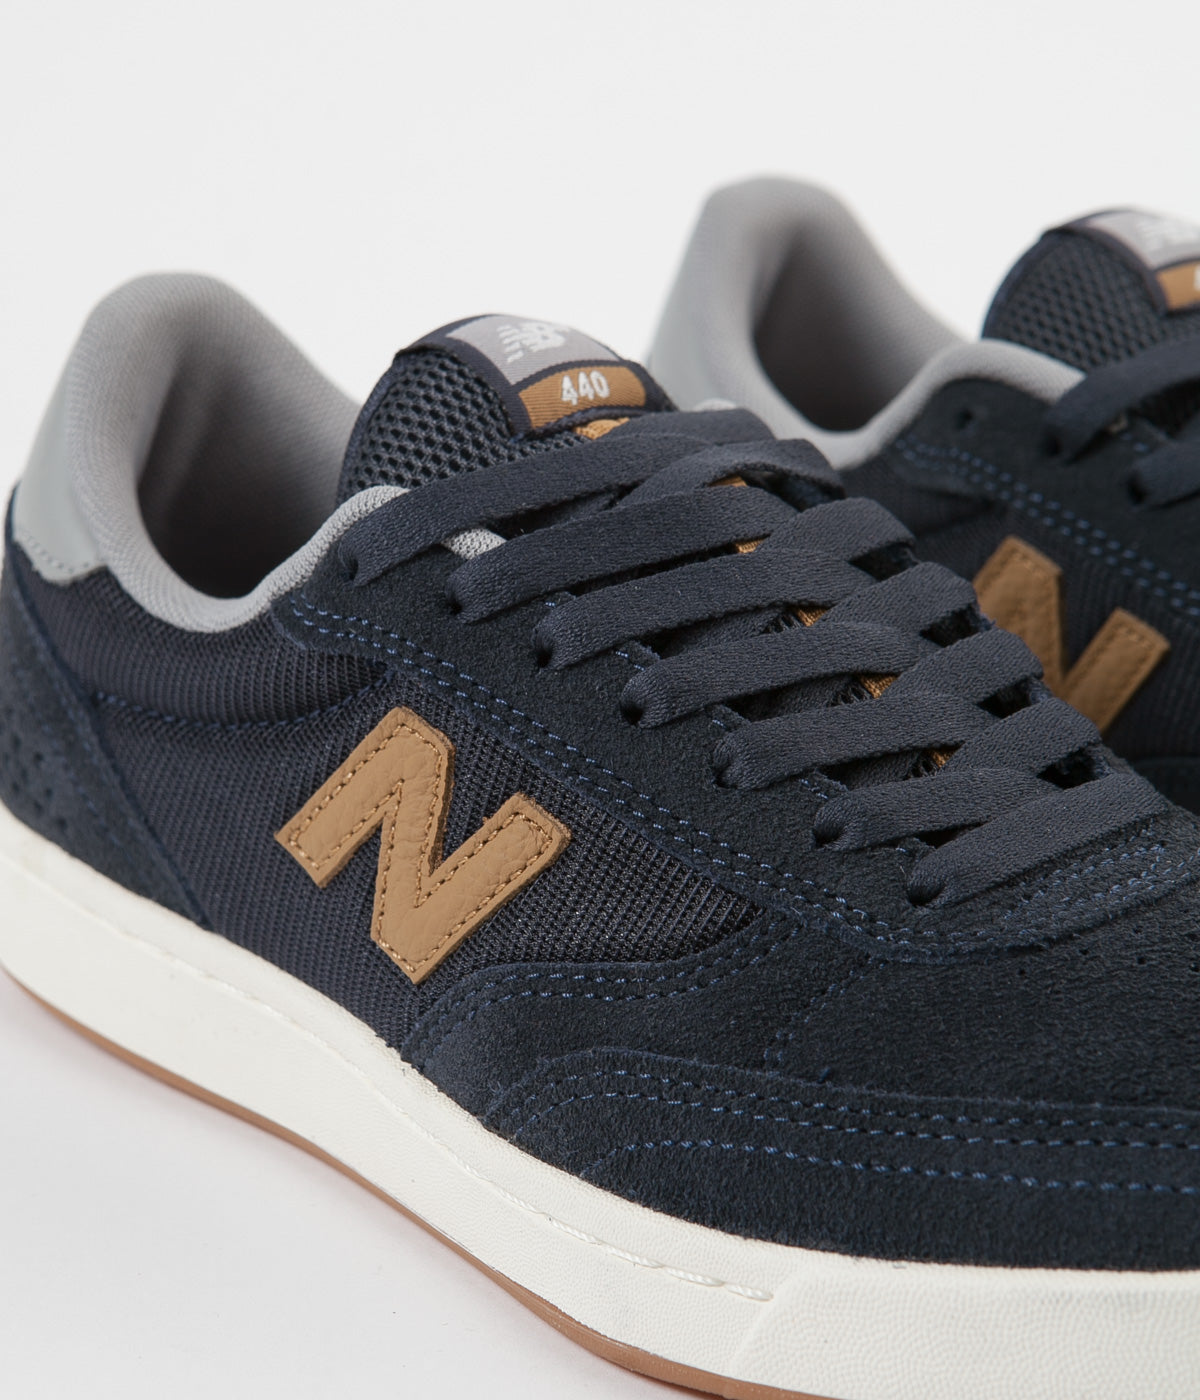 New Balance Numeric 440 Shoes - Navy / Brown